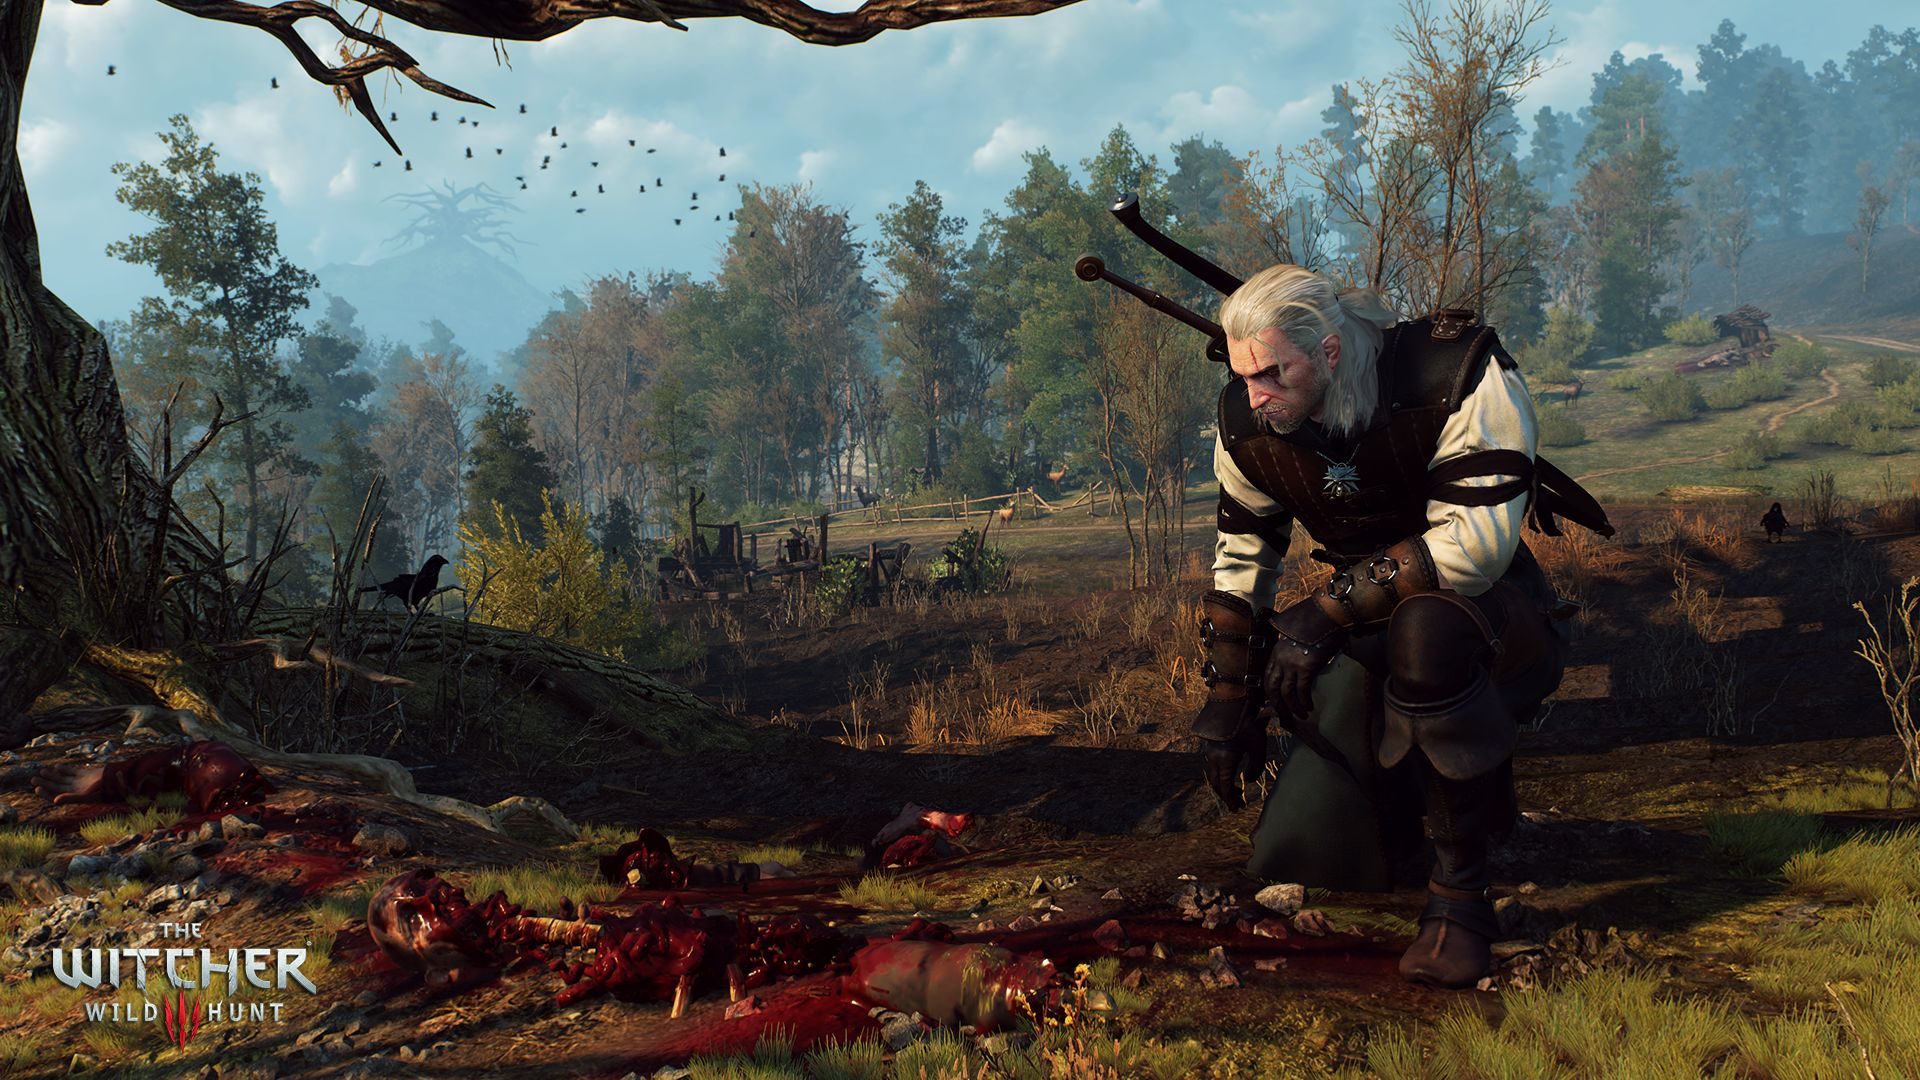 witcher3images01